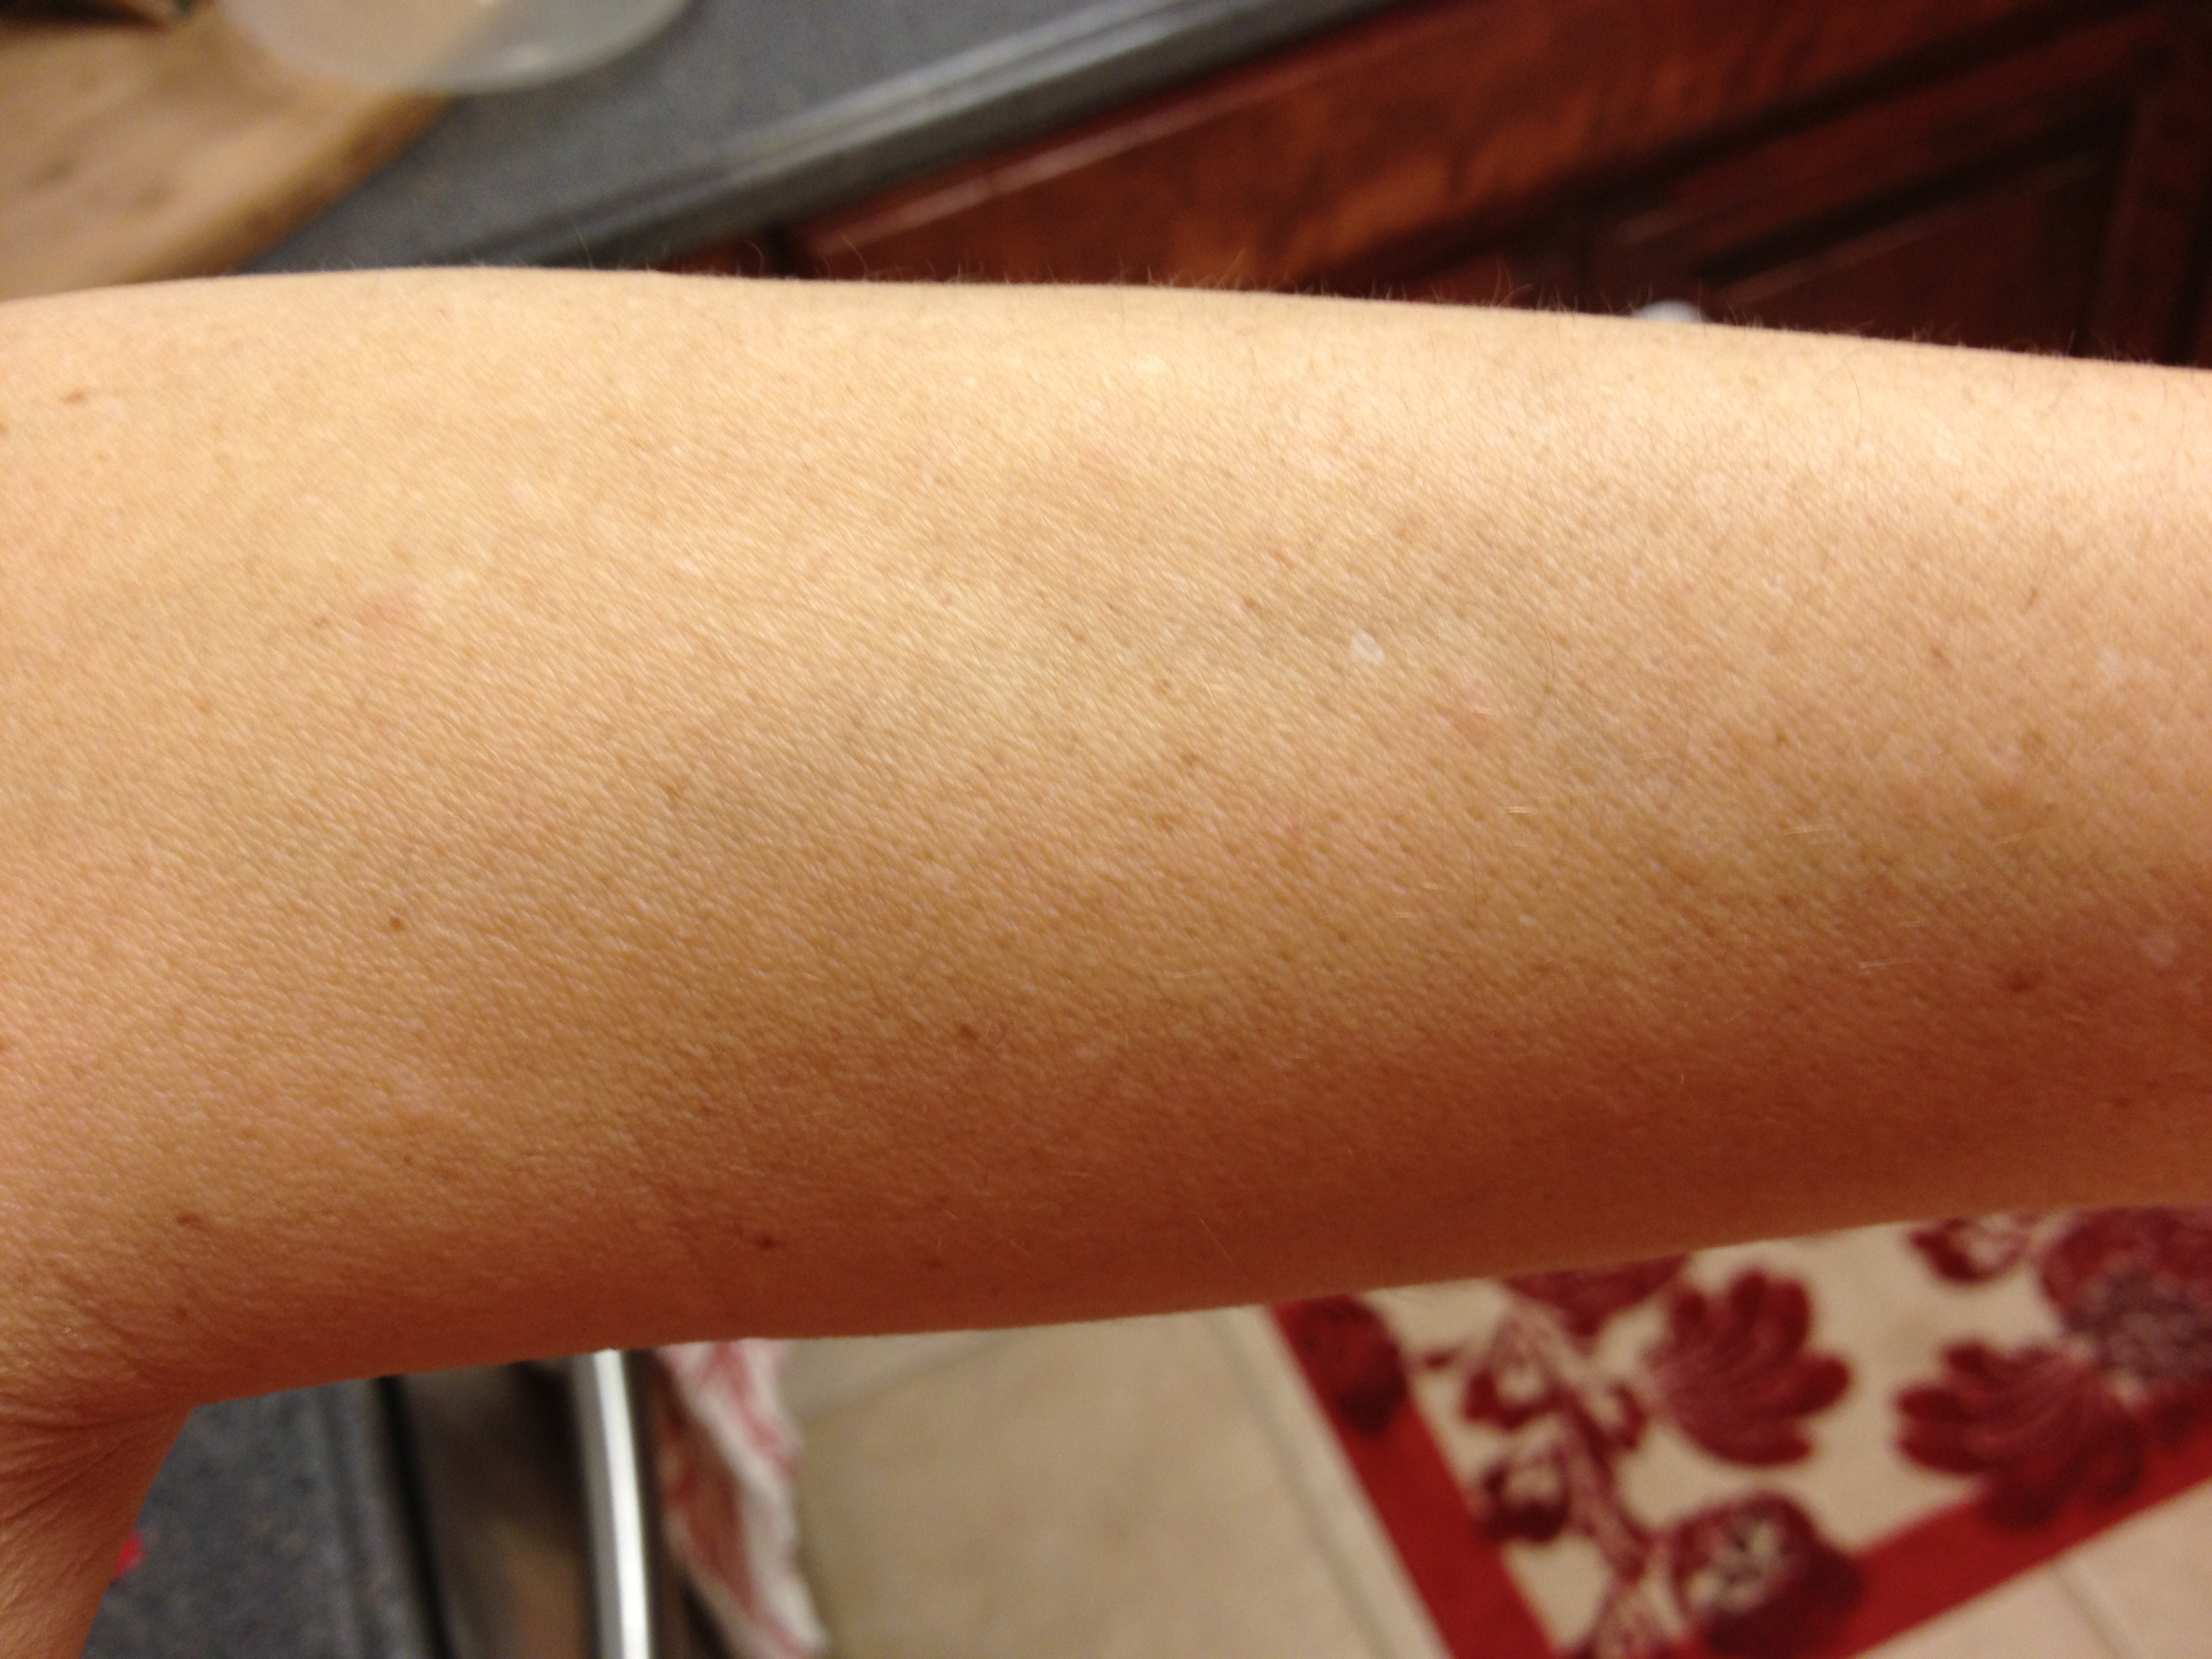 red rash after taking prednisone